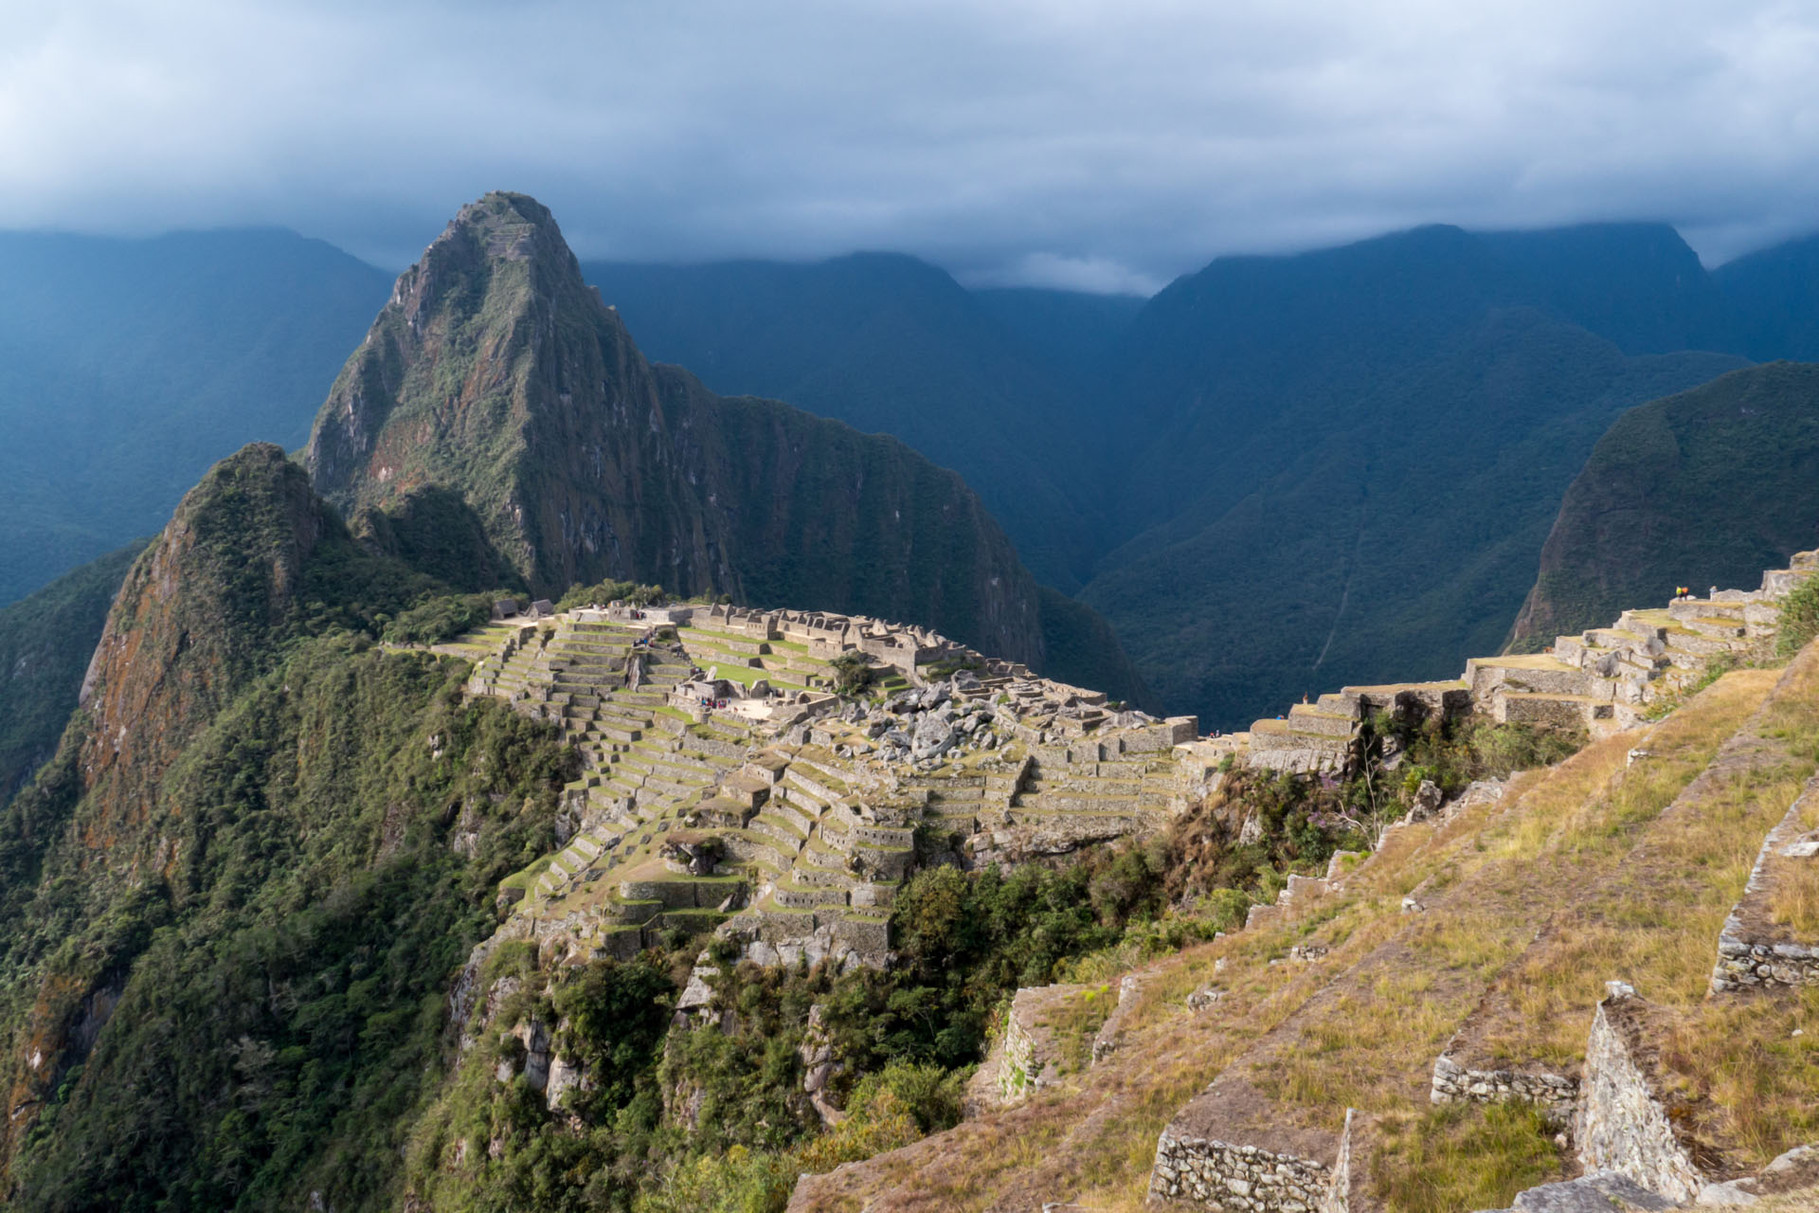 Machu Pichu and Wayna Picchu (2700 masl) in the background [Peru, 2014]